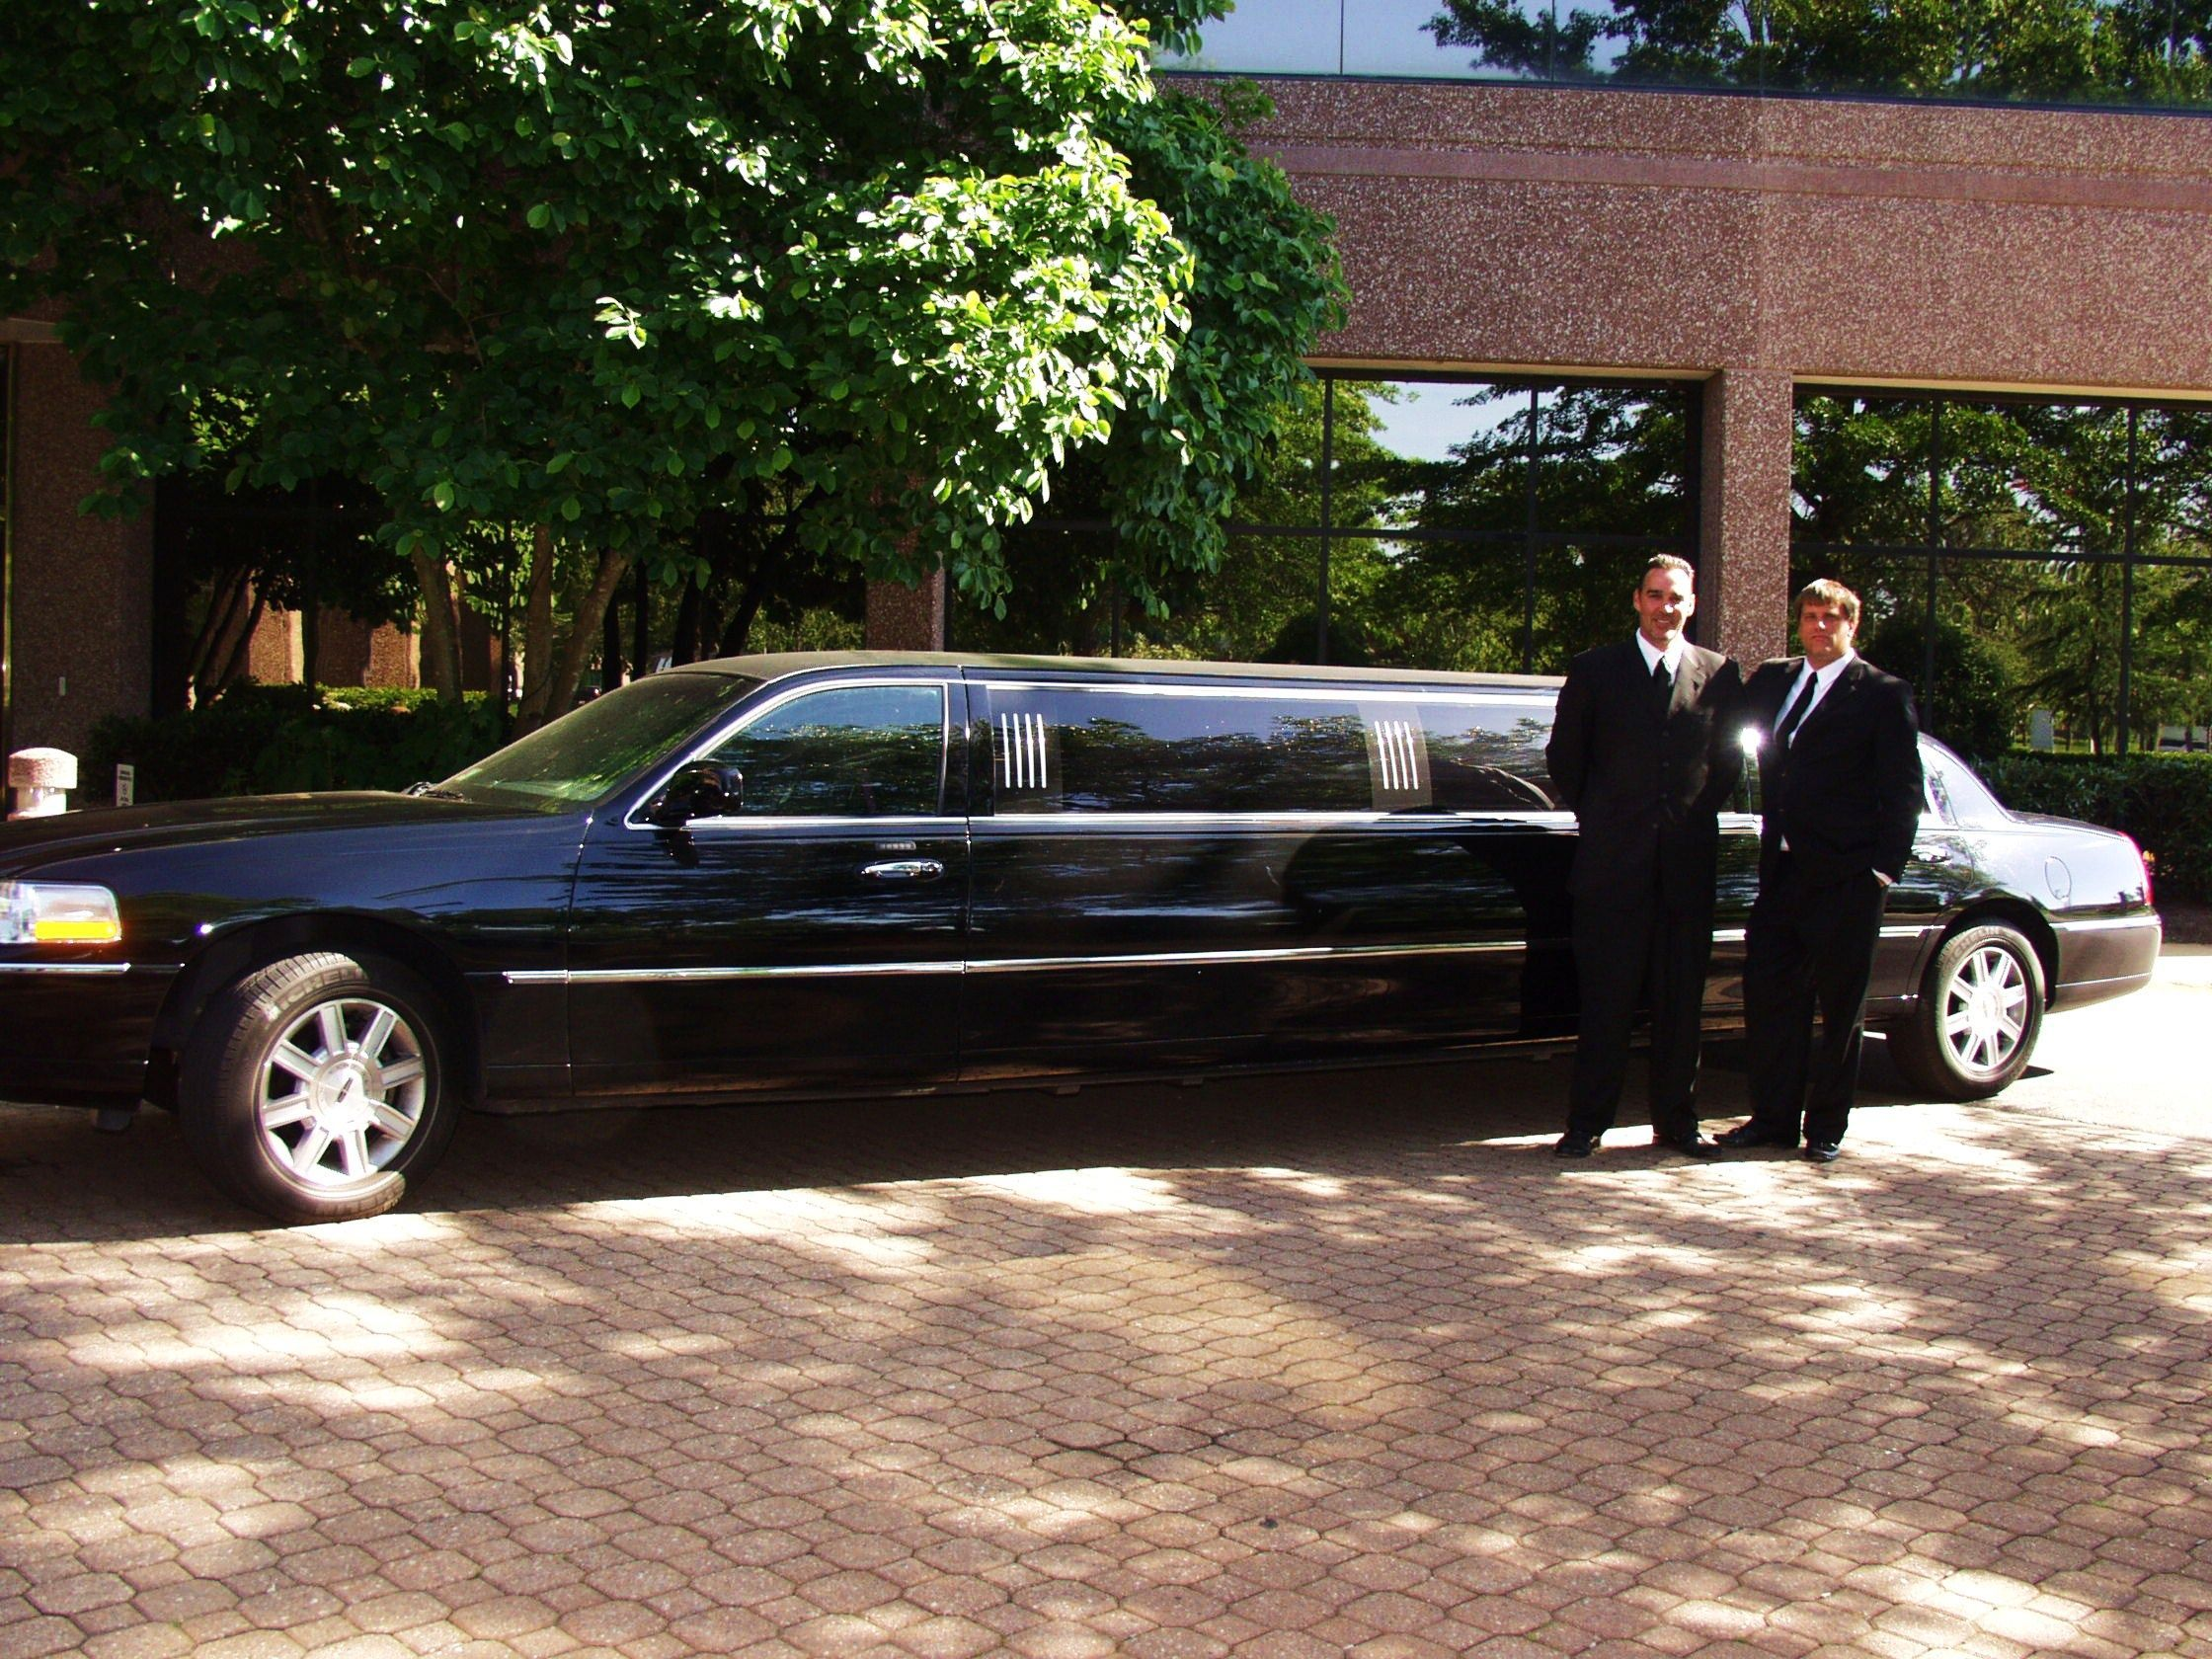 limousine service meaning